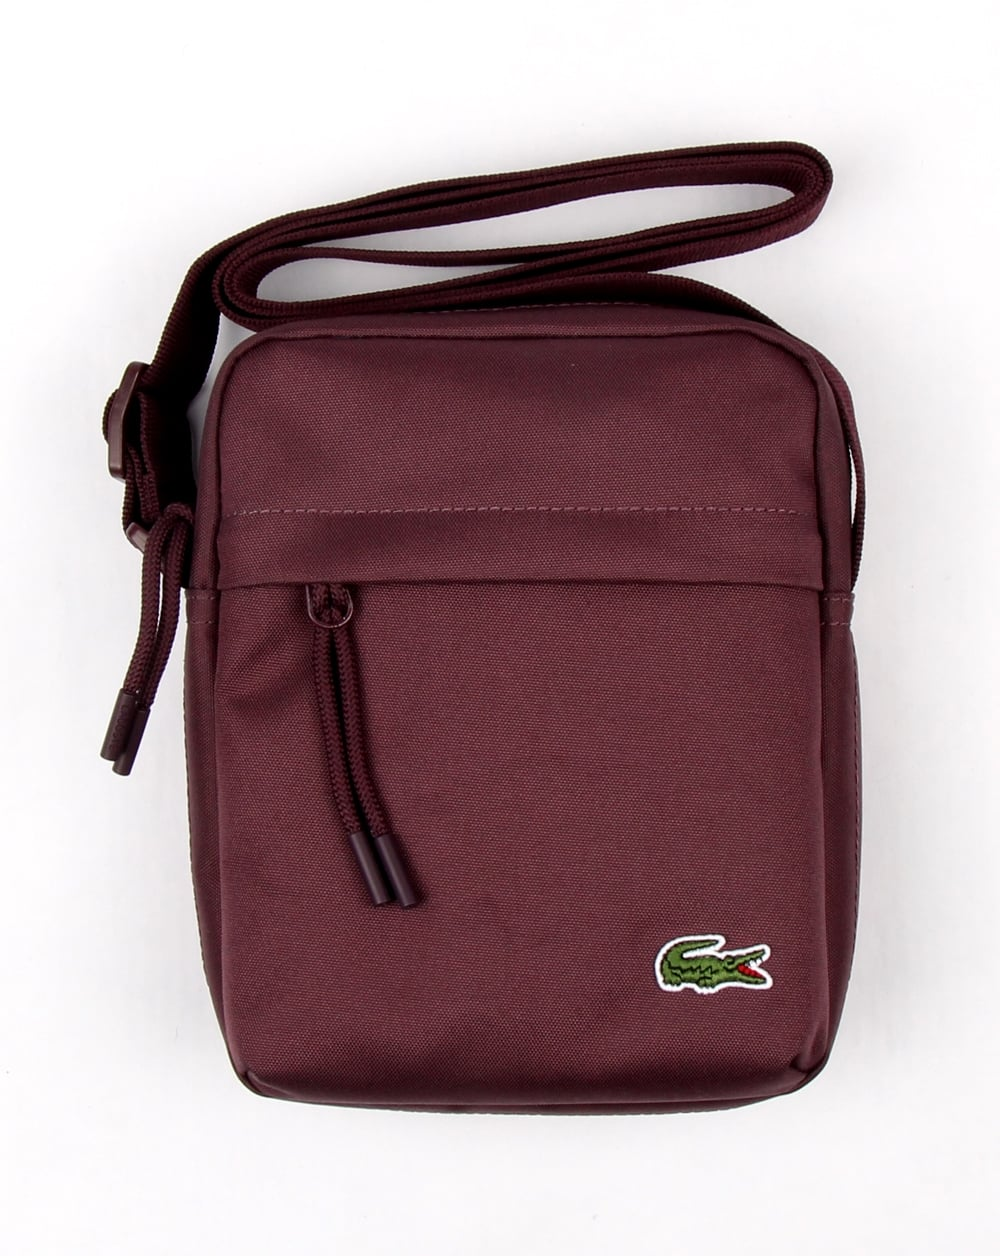 3f4a4d4959c775 Lacoste Vertical Camera Bag Wine,shoulder,festival,mens